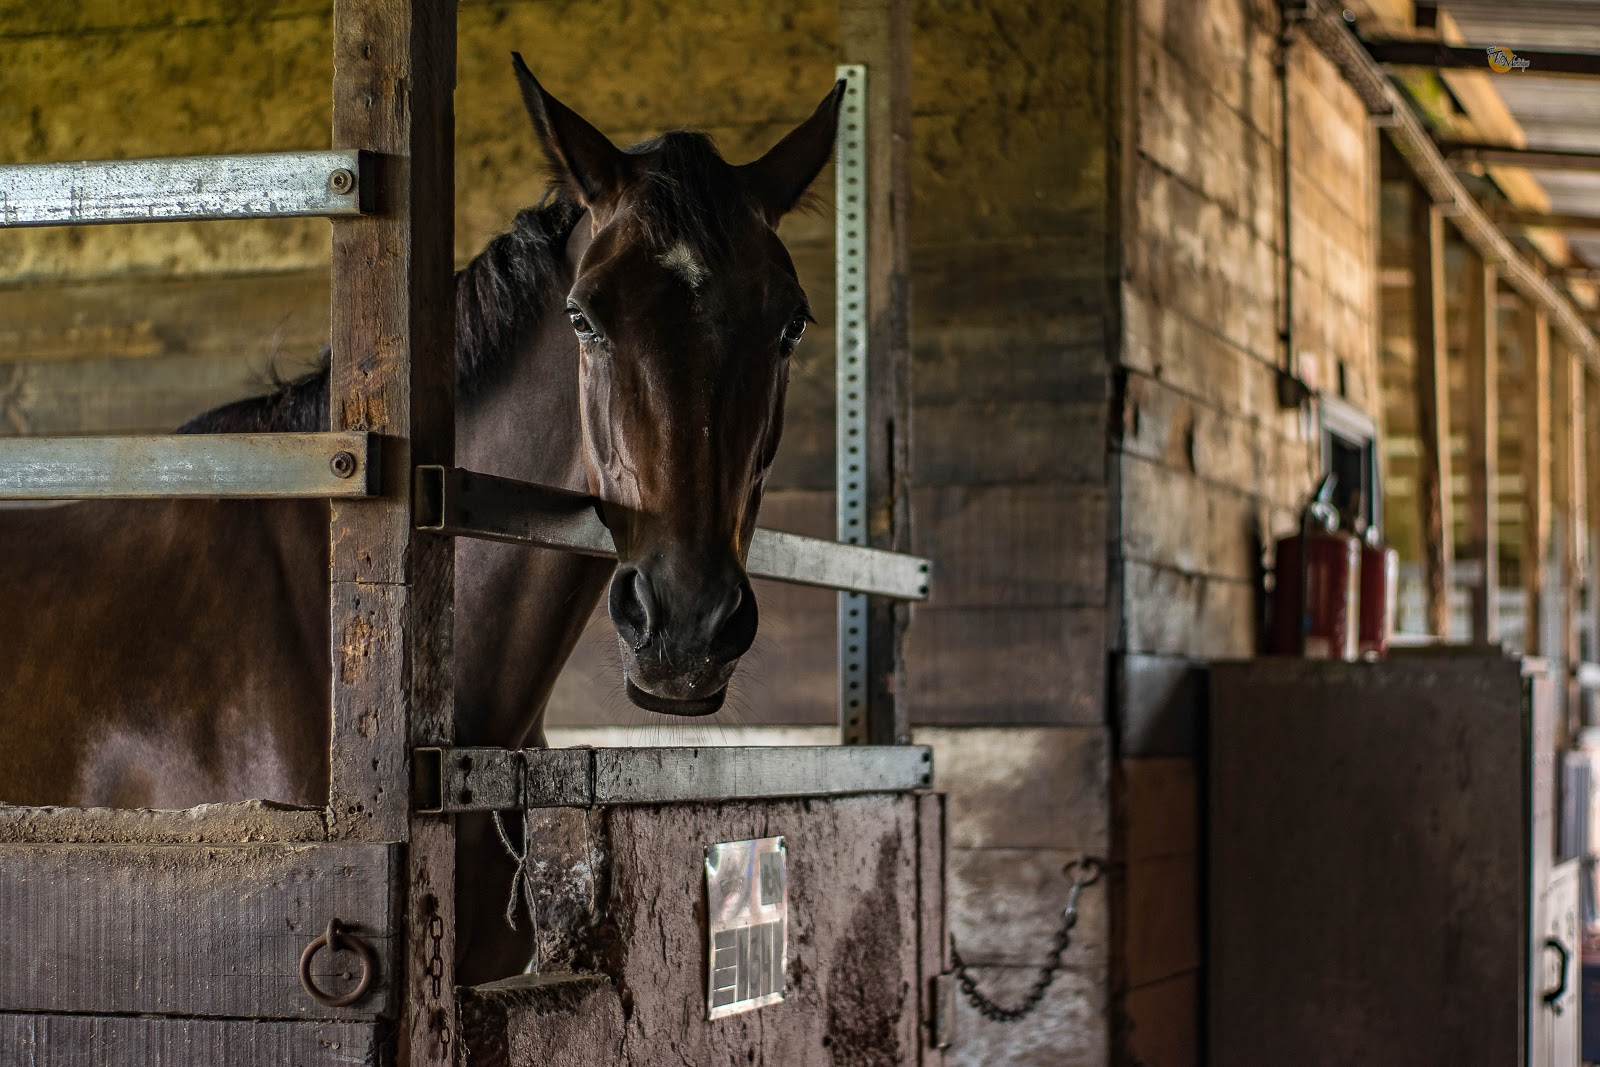 A dark black horse standing in a stall and. looking ahead at the camera